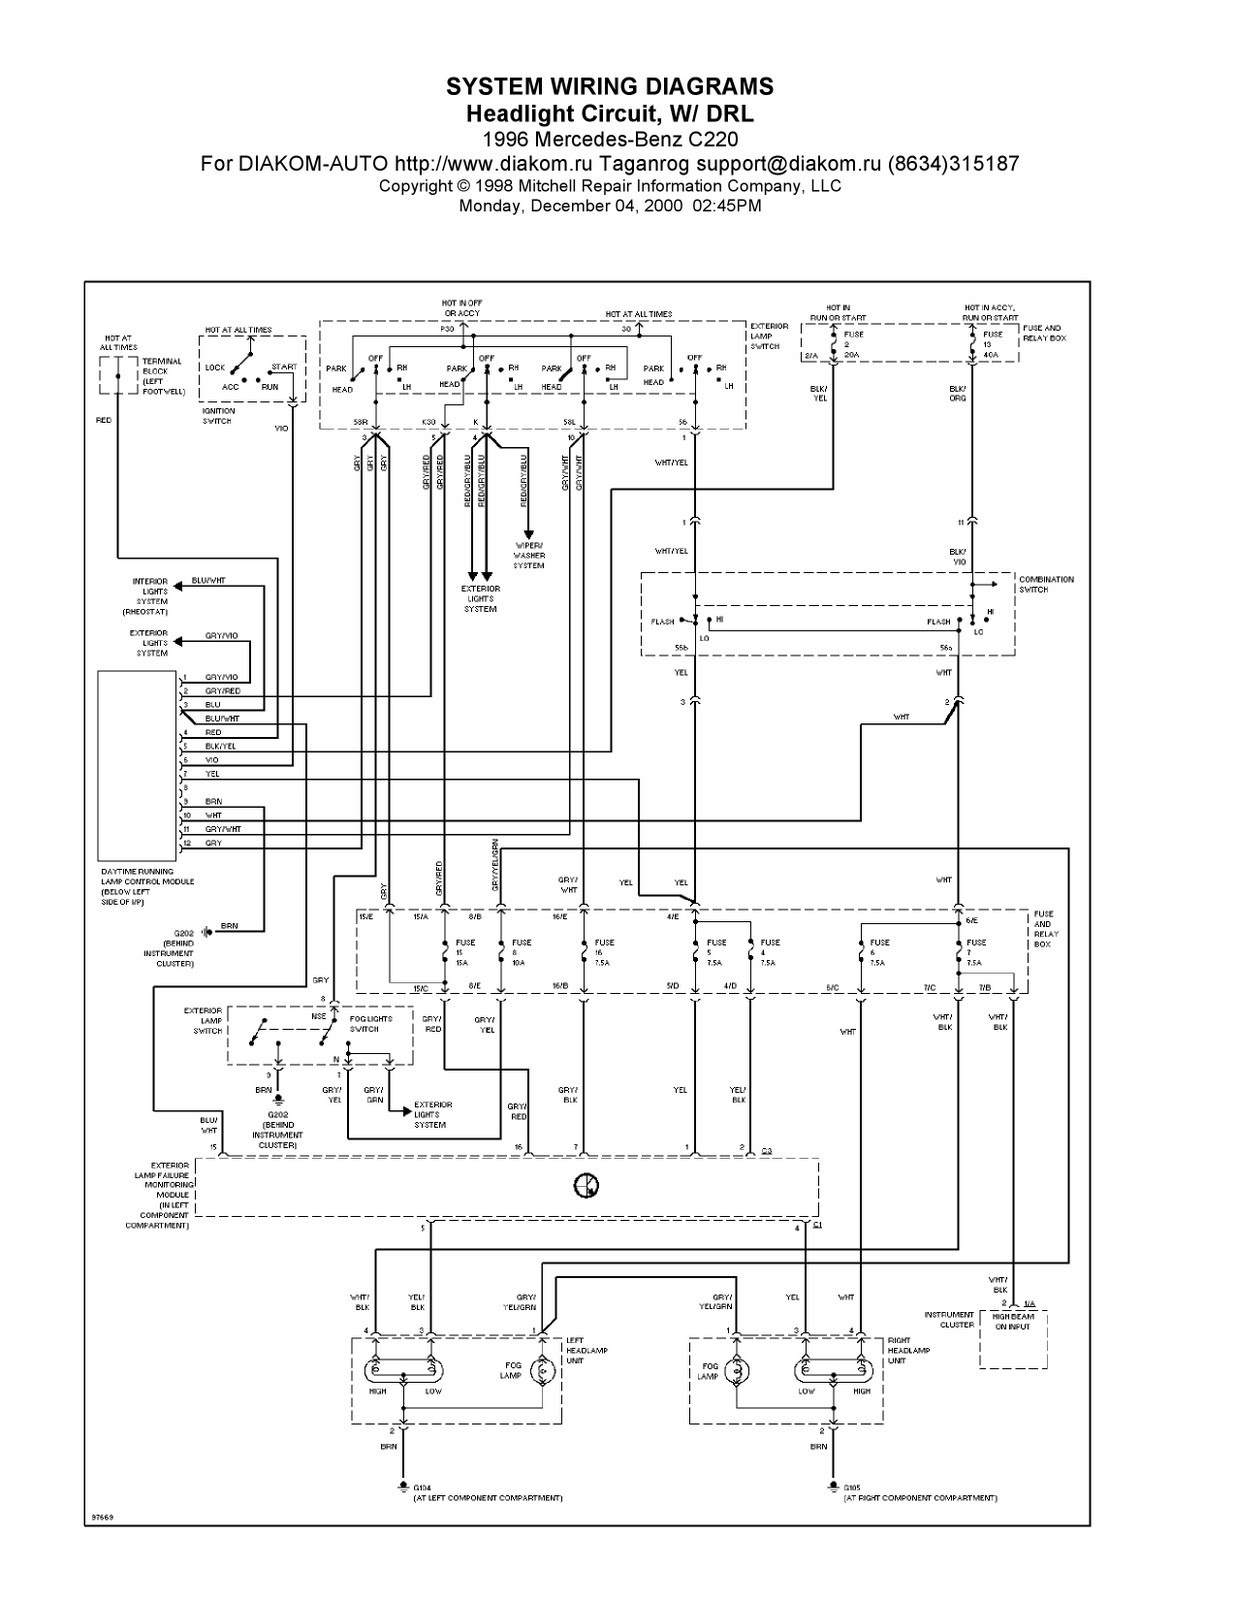 medium resolution of w124 air conditioner wiring diagram wiring diagrammercedes benz w209 wiring diagram free image wiring diagram enginemercedes